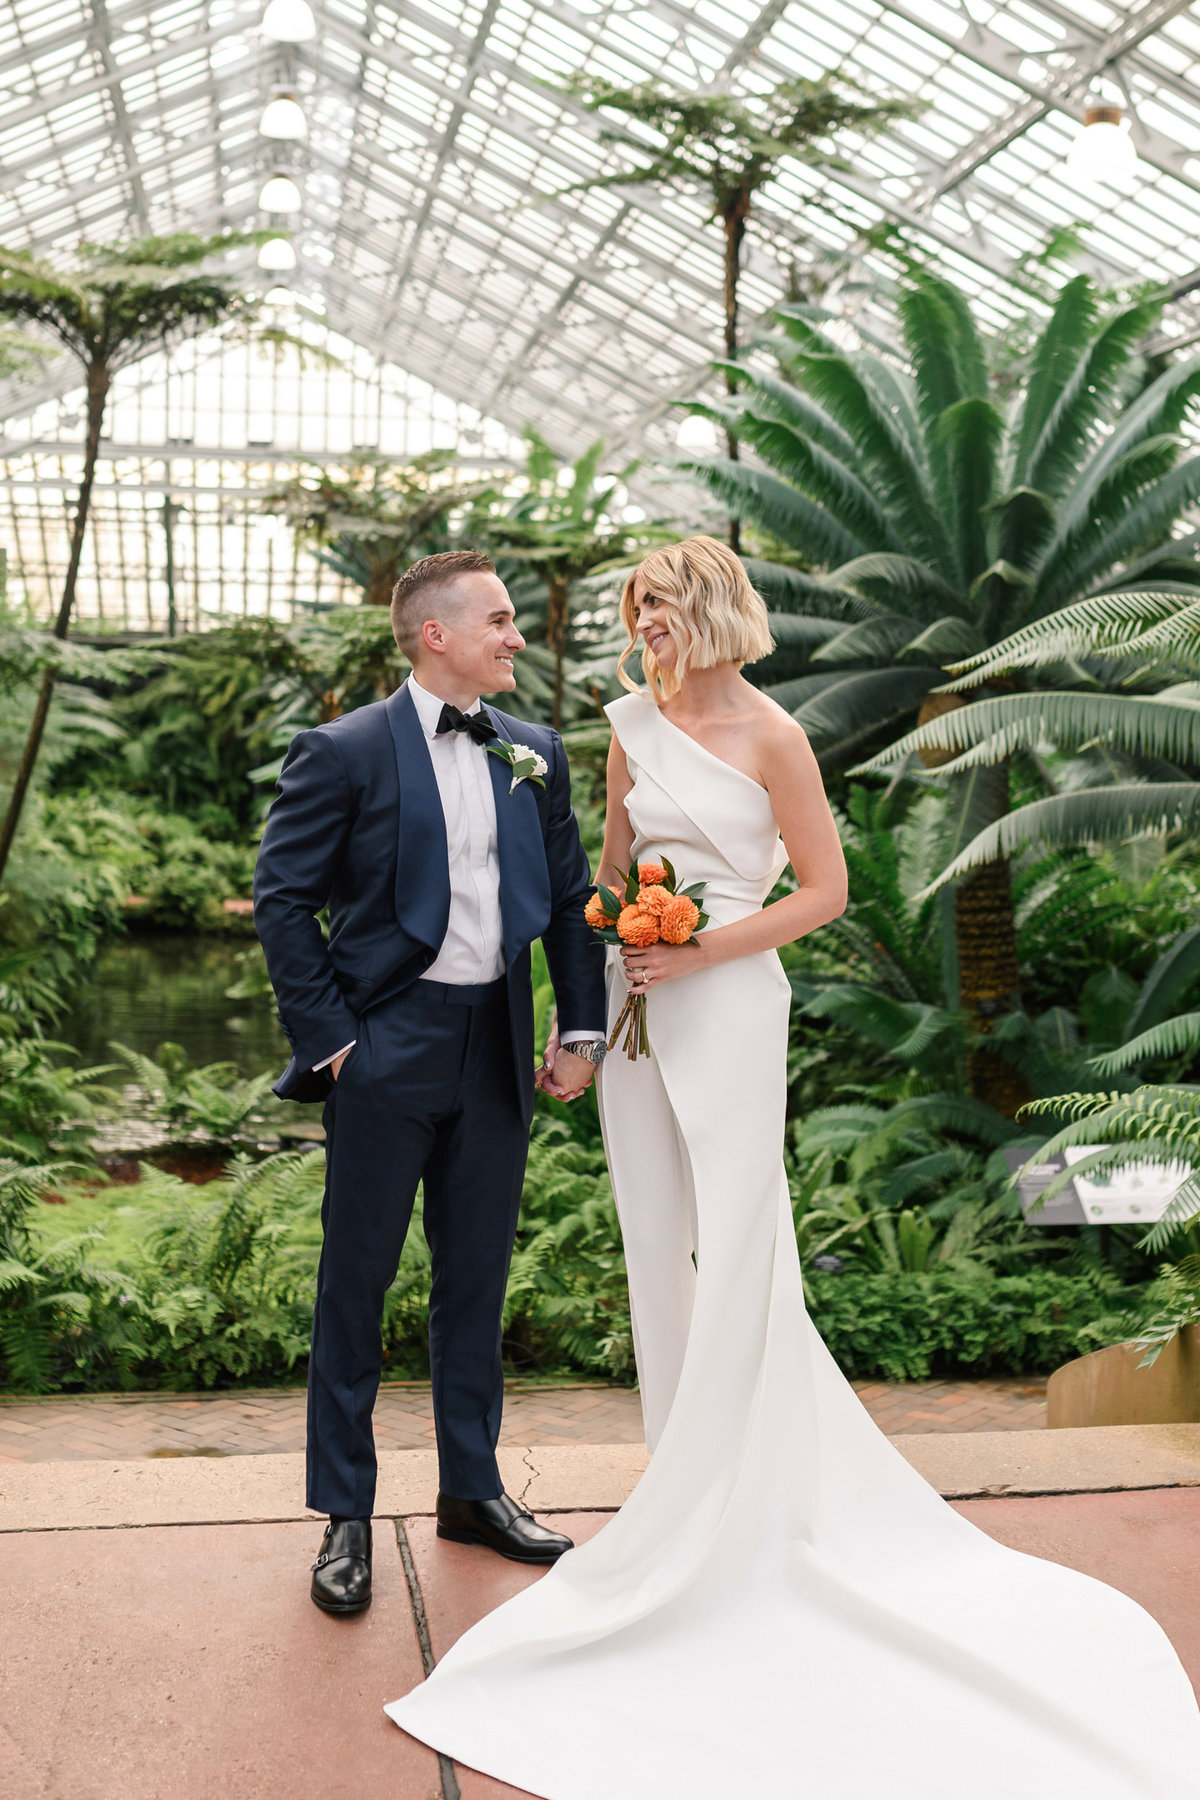 garfield-park-conservatory-chicago-wedding-the-paper-elephant-0021